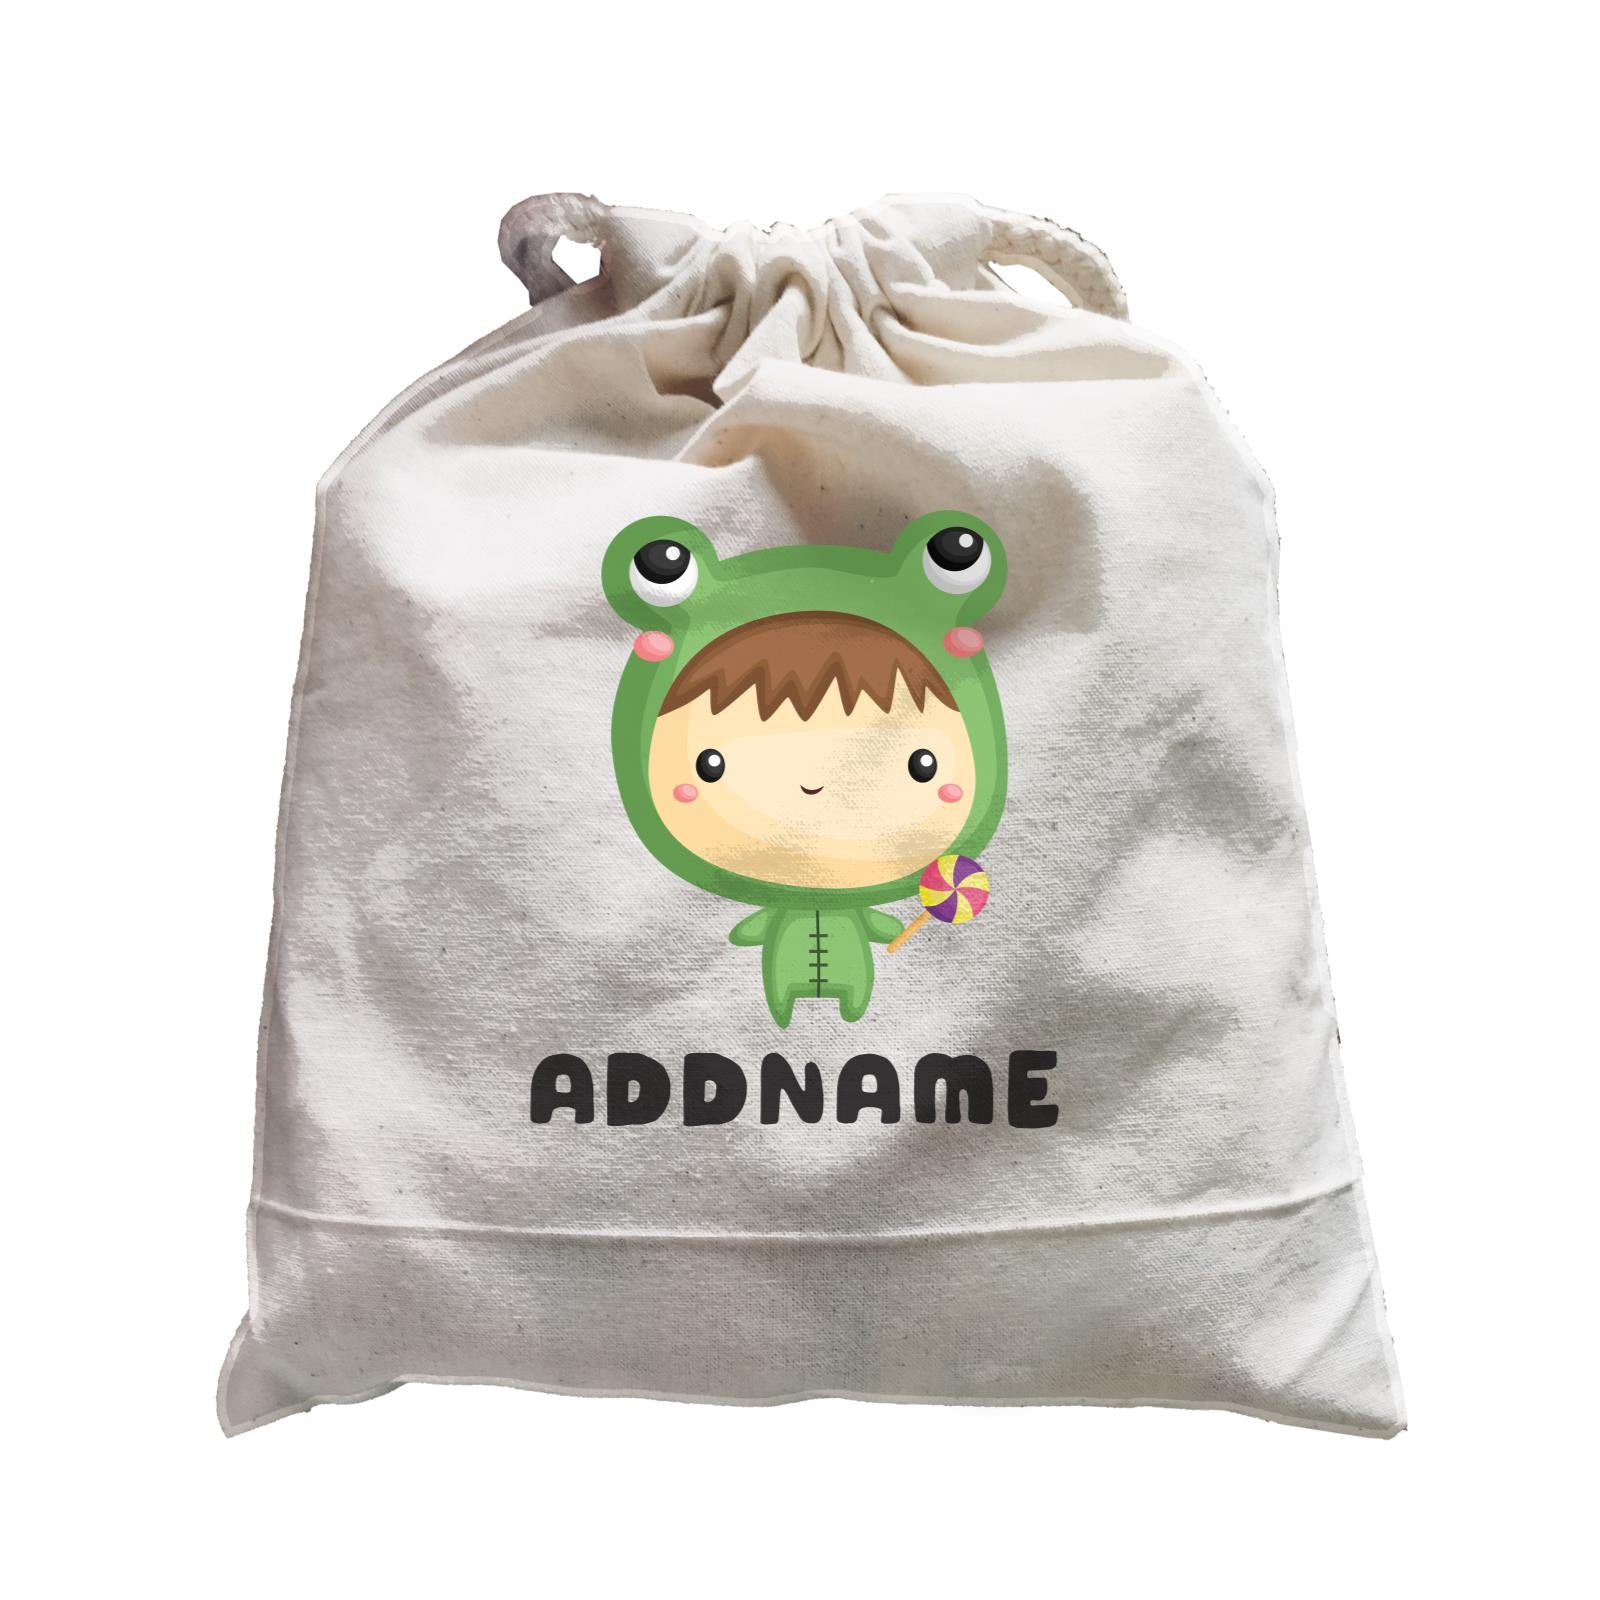 Birthday Frog Baby Boy Wearing Frog Suit Holding Lolipop Addname Satchel